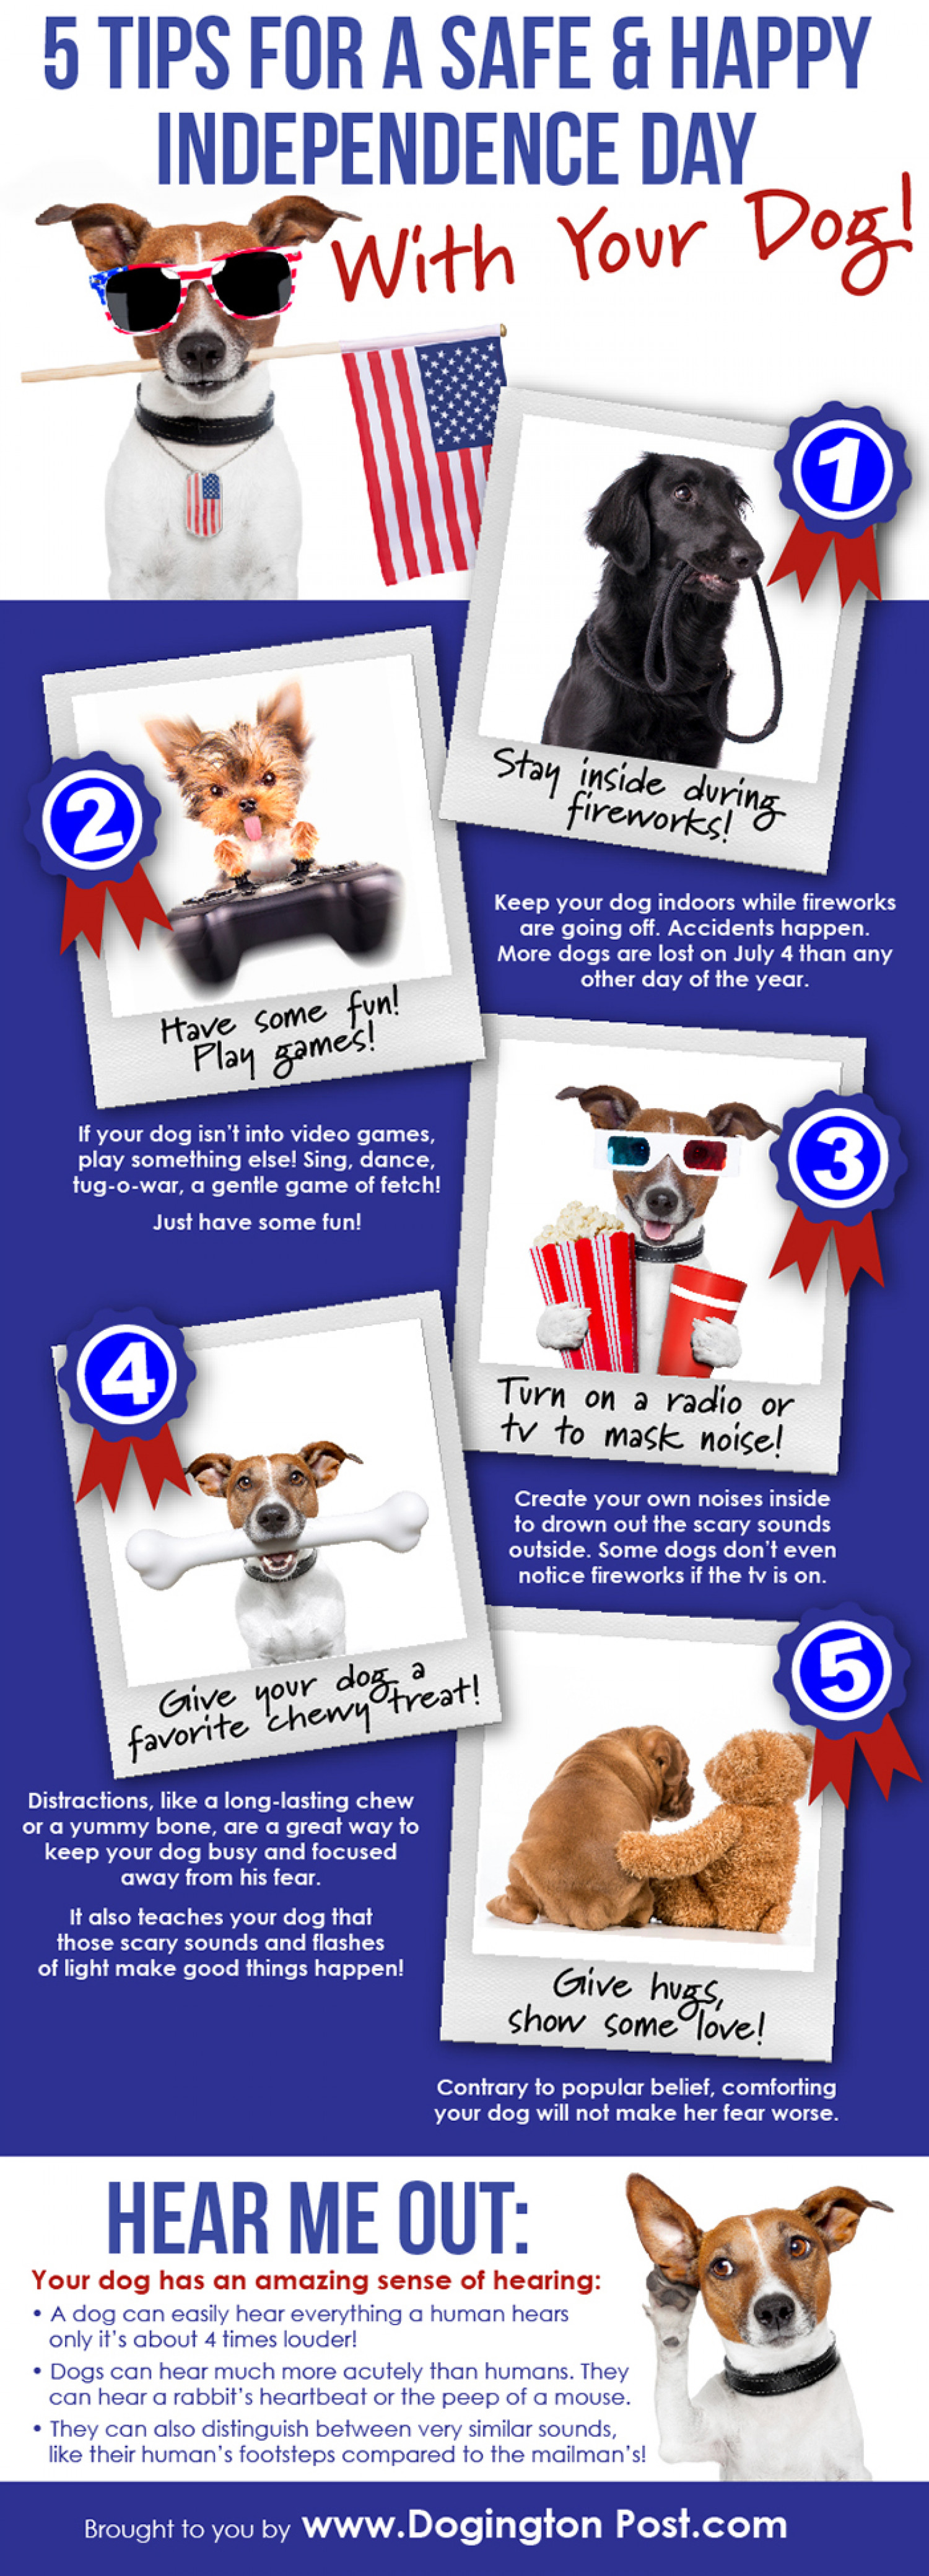 5 Tips for a Safe & Happy Independence Day With Your Dog Infographic